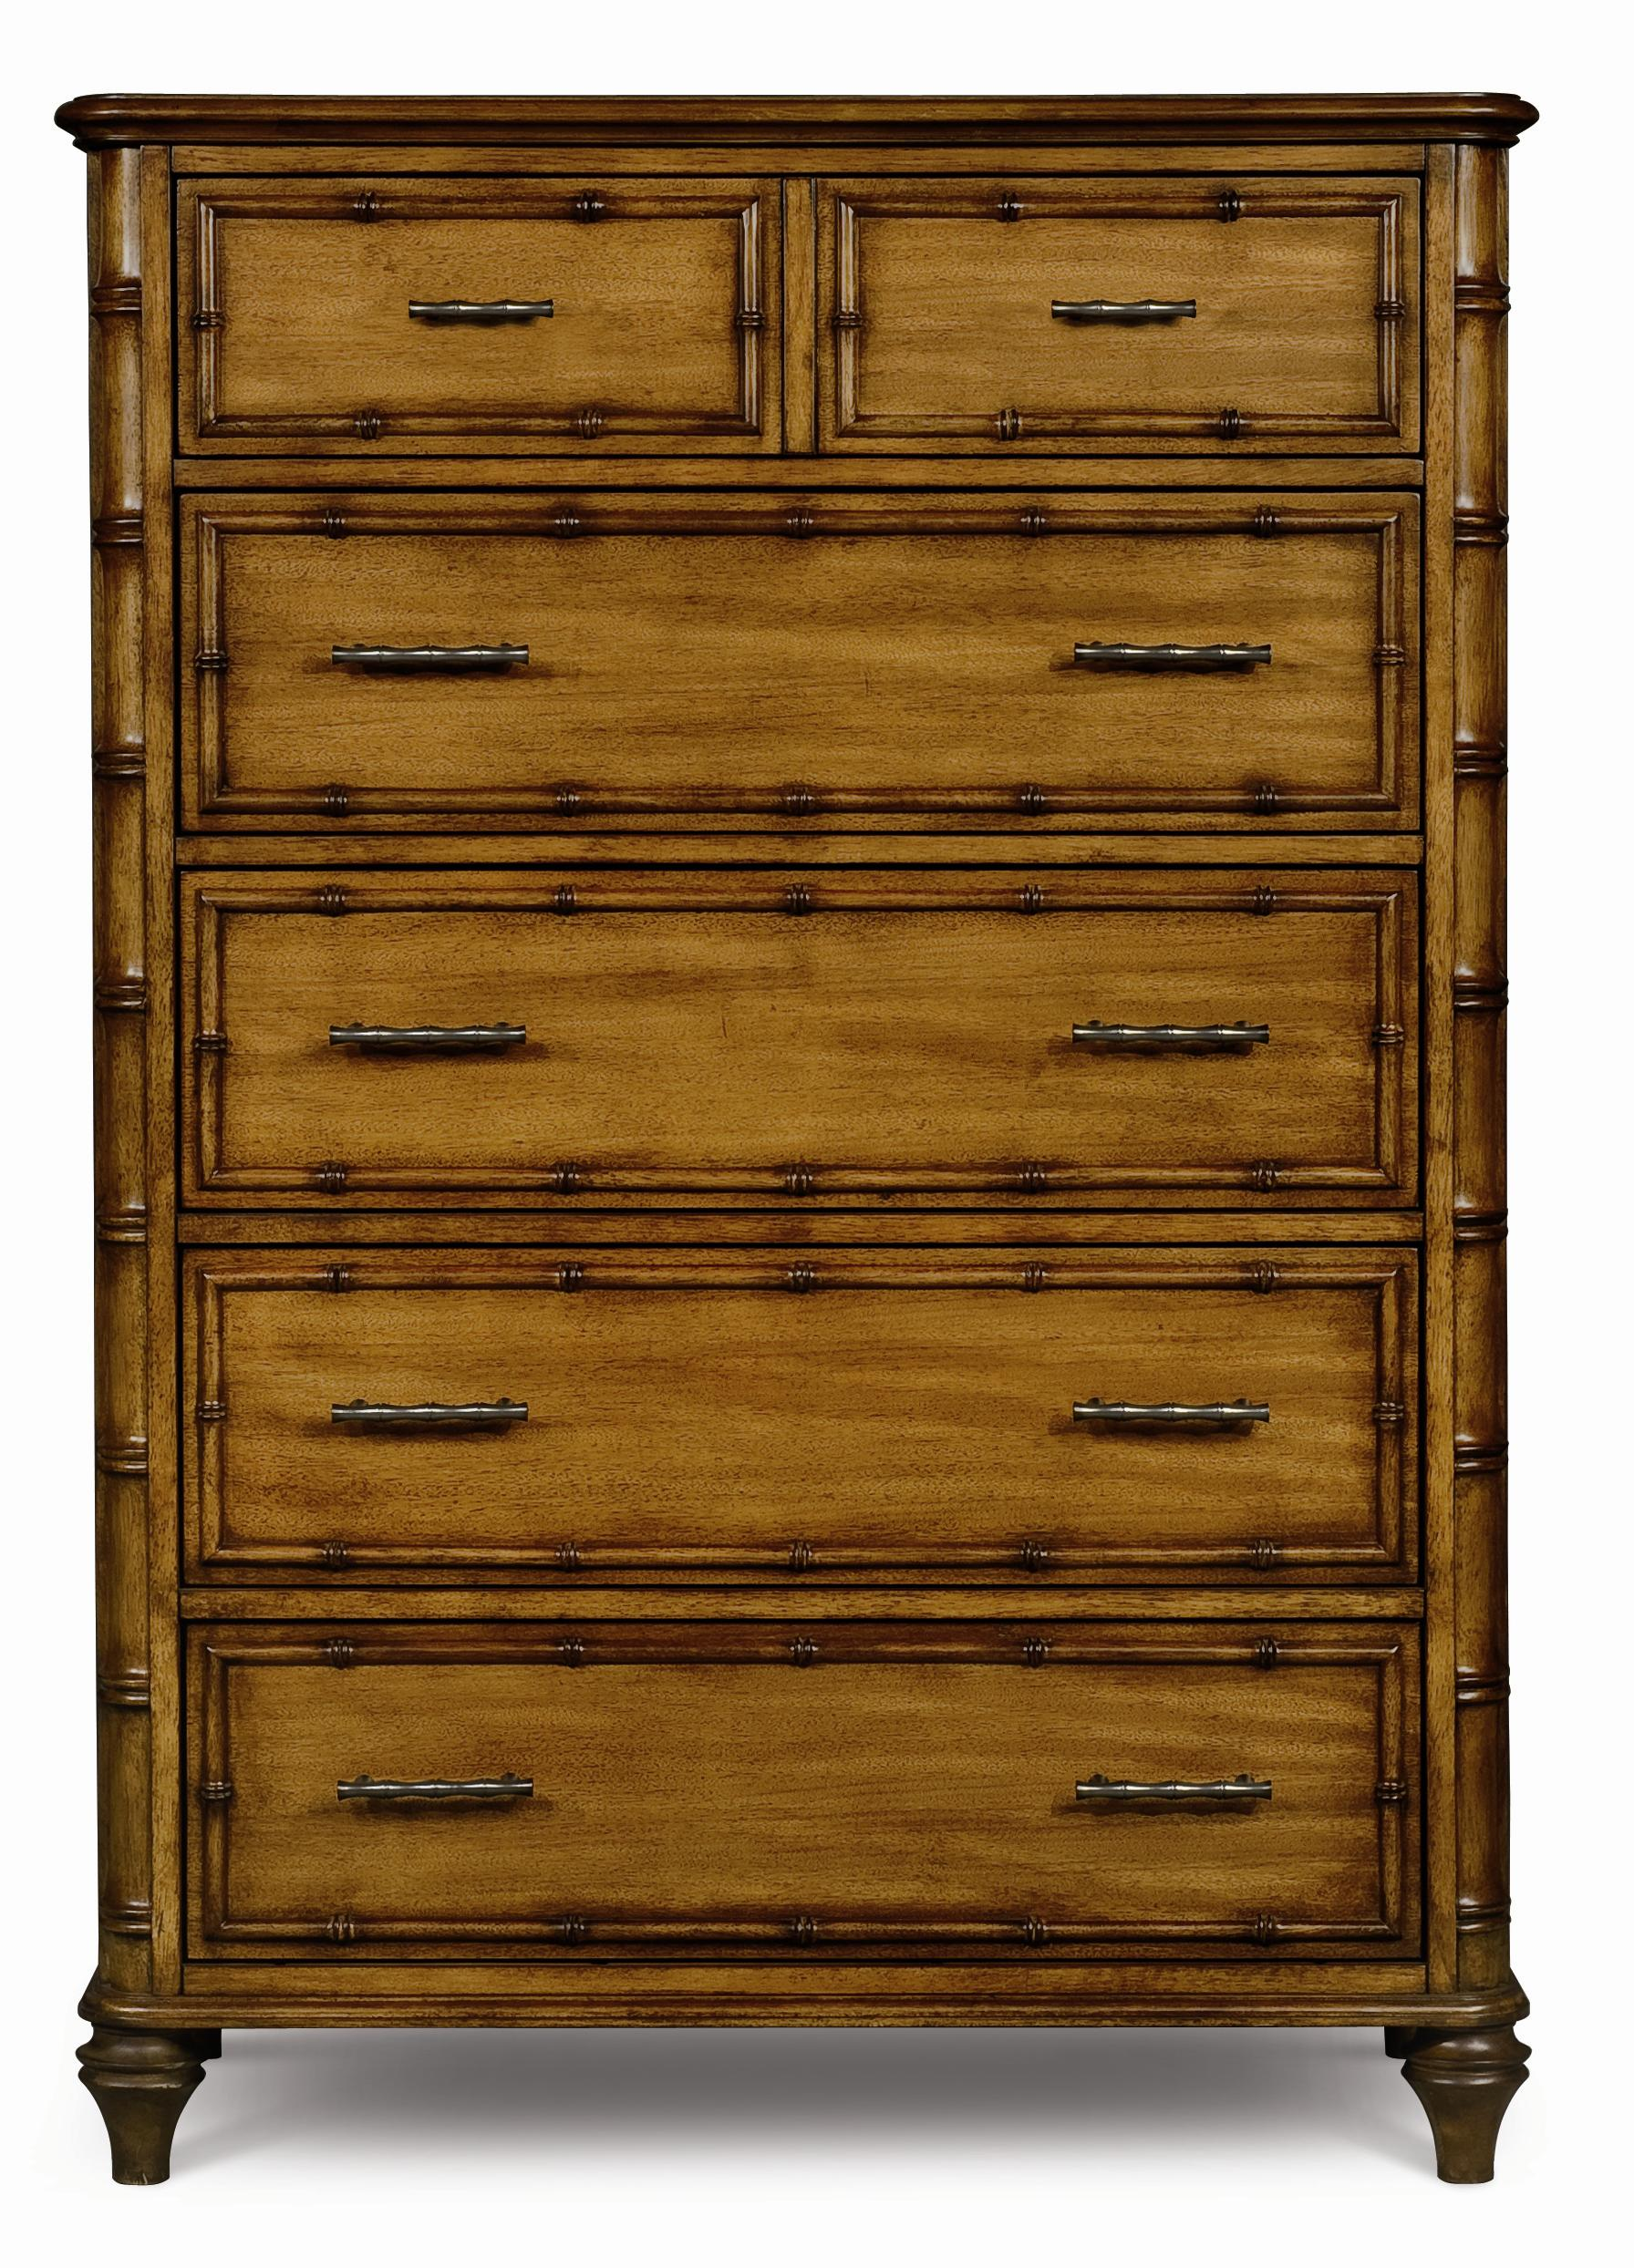 Magnussen Home Palm Bay Drawer Chest - Item Number: B1469-10